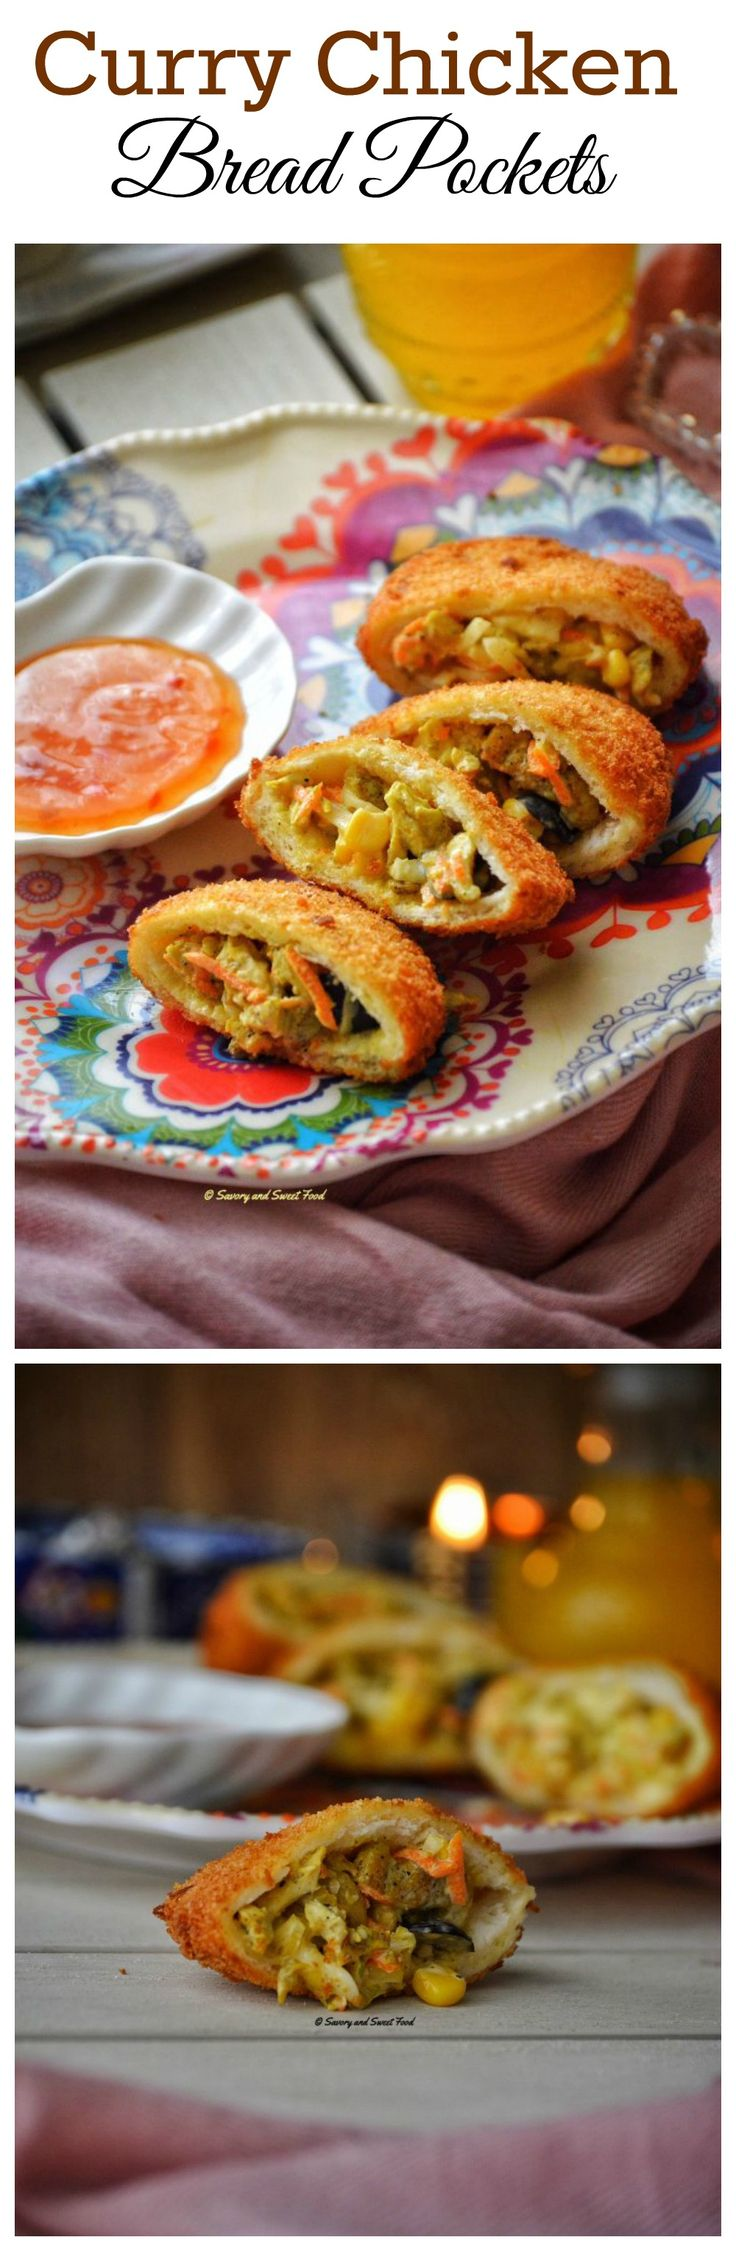 A curry flavoured creamy chicken filling stuffed inside crispy bread pockets